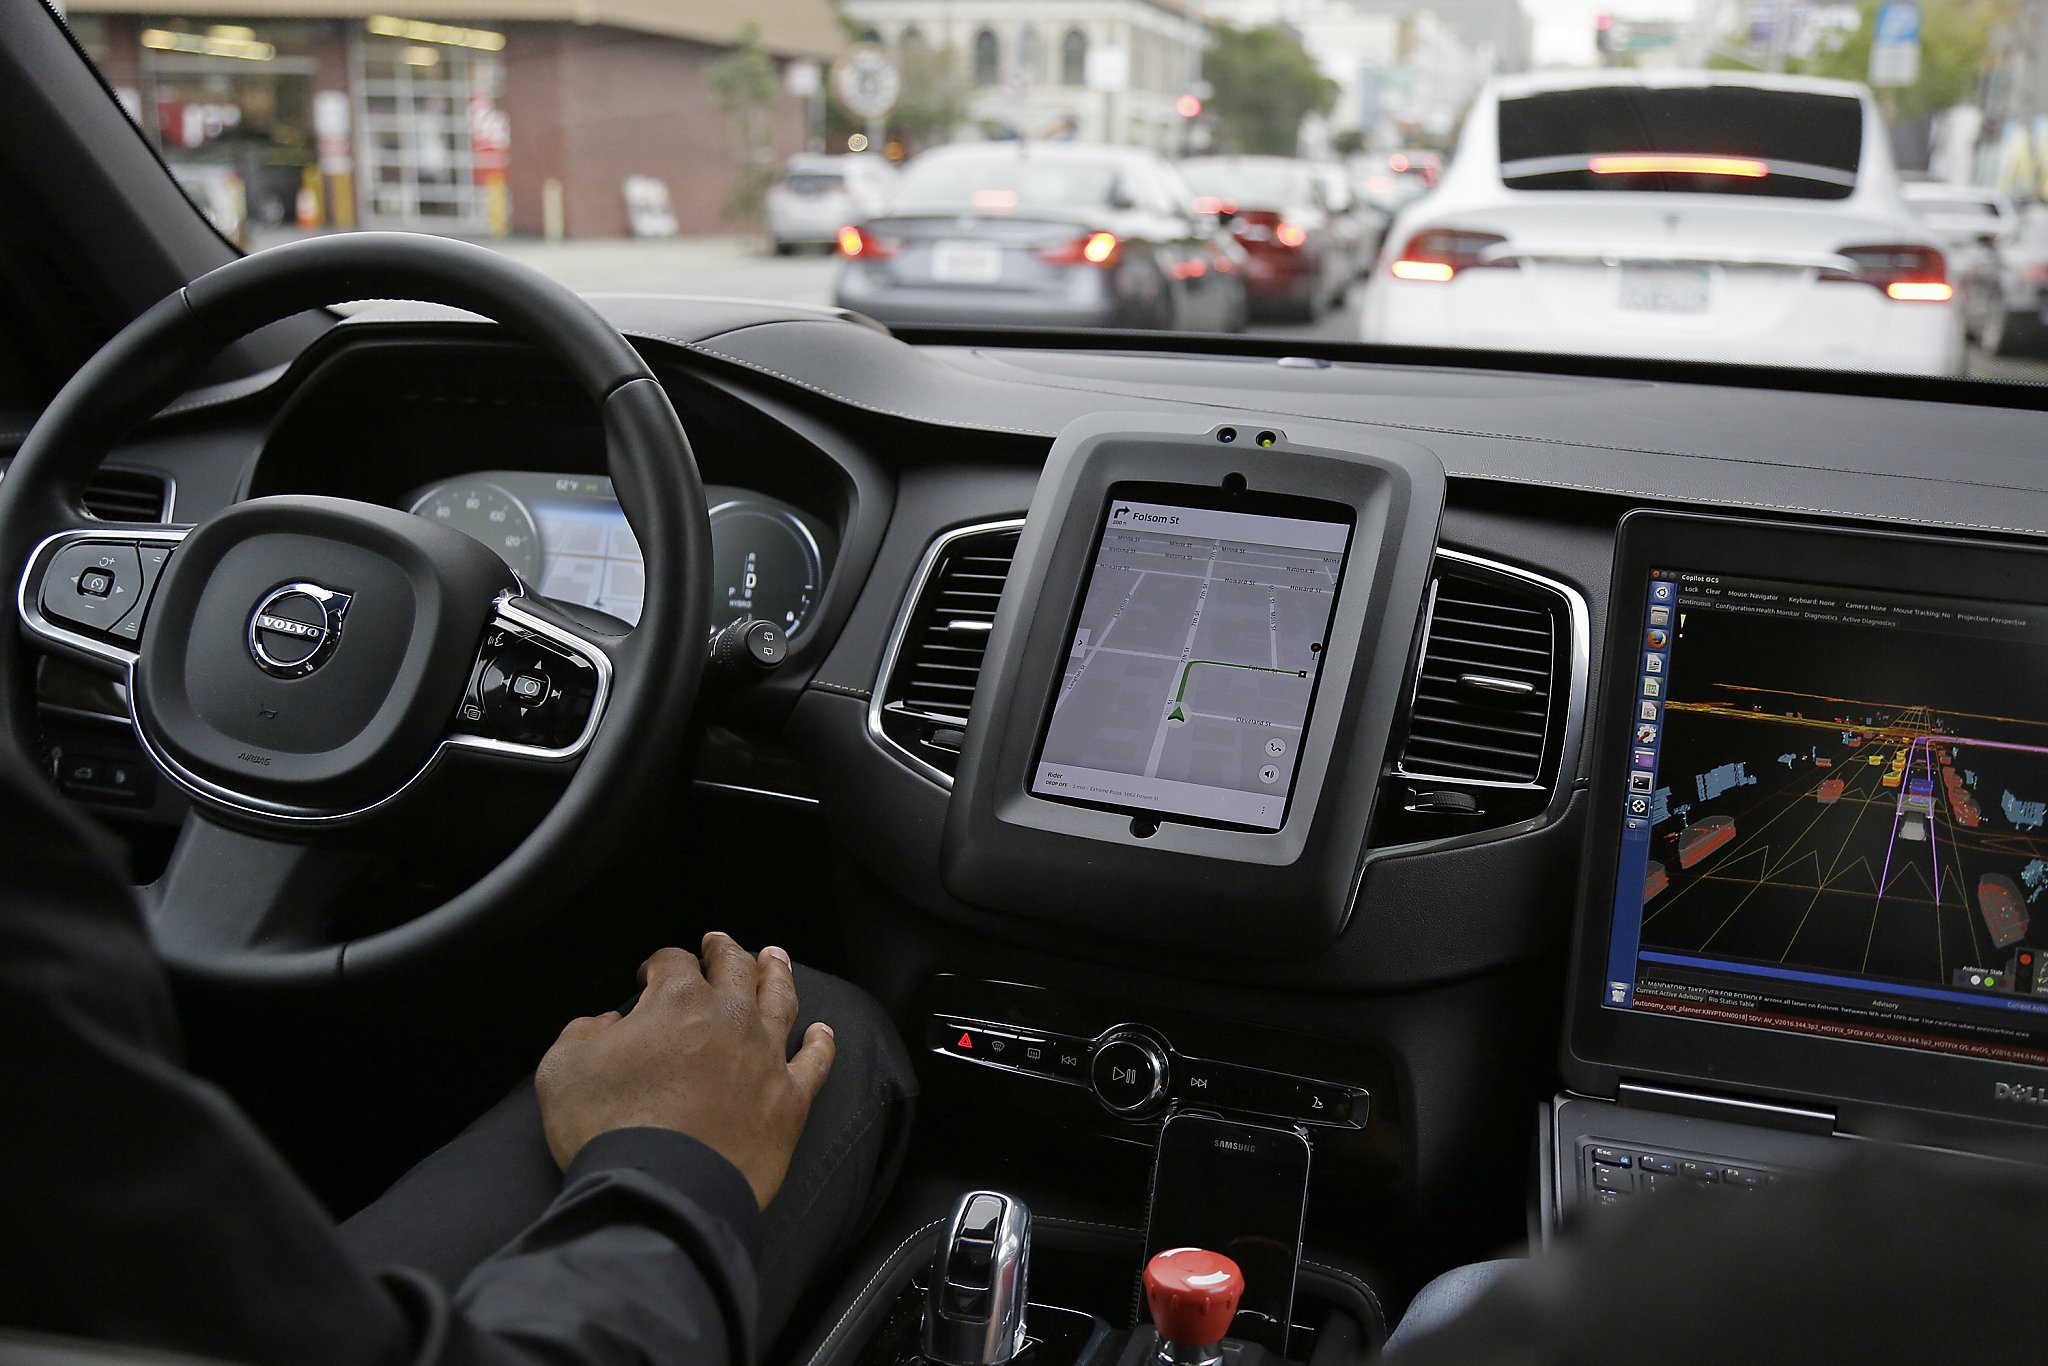 Uber halts S F  self-driving pilot in showdown with DMV - SFGate